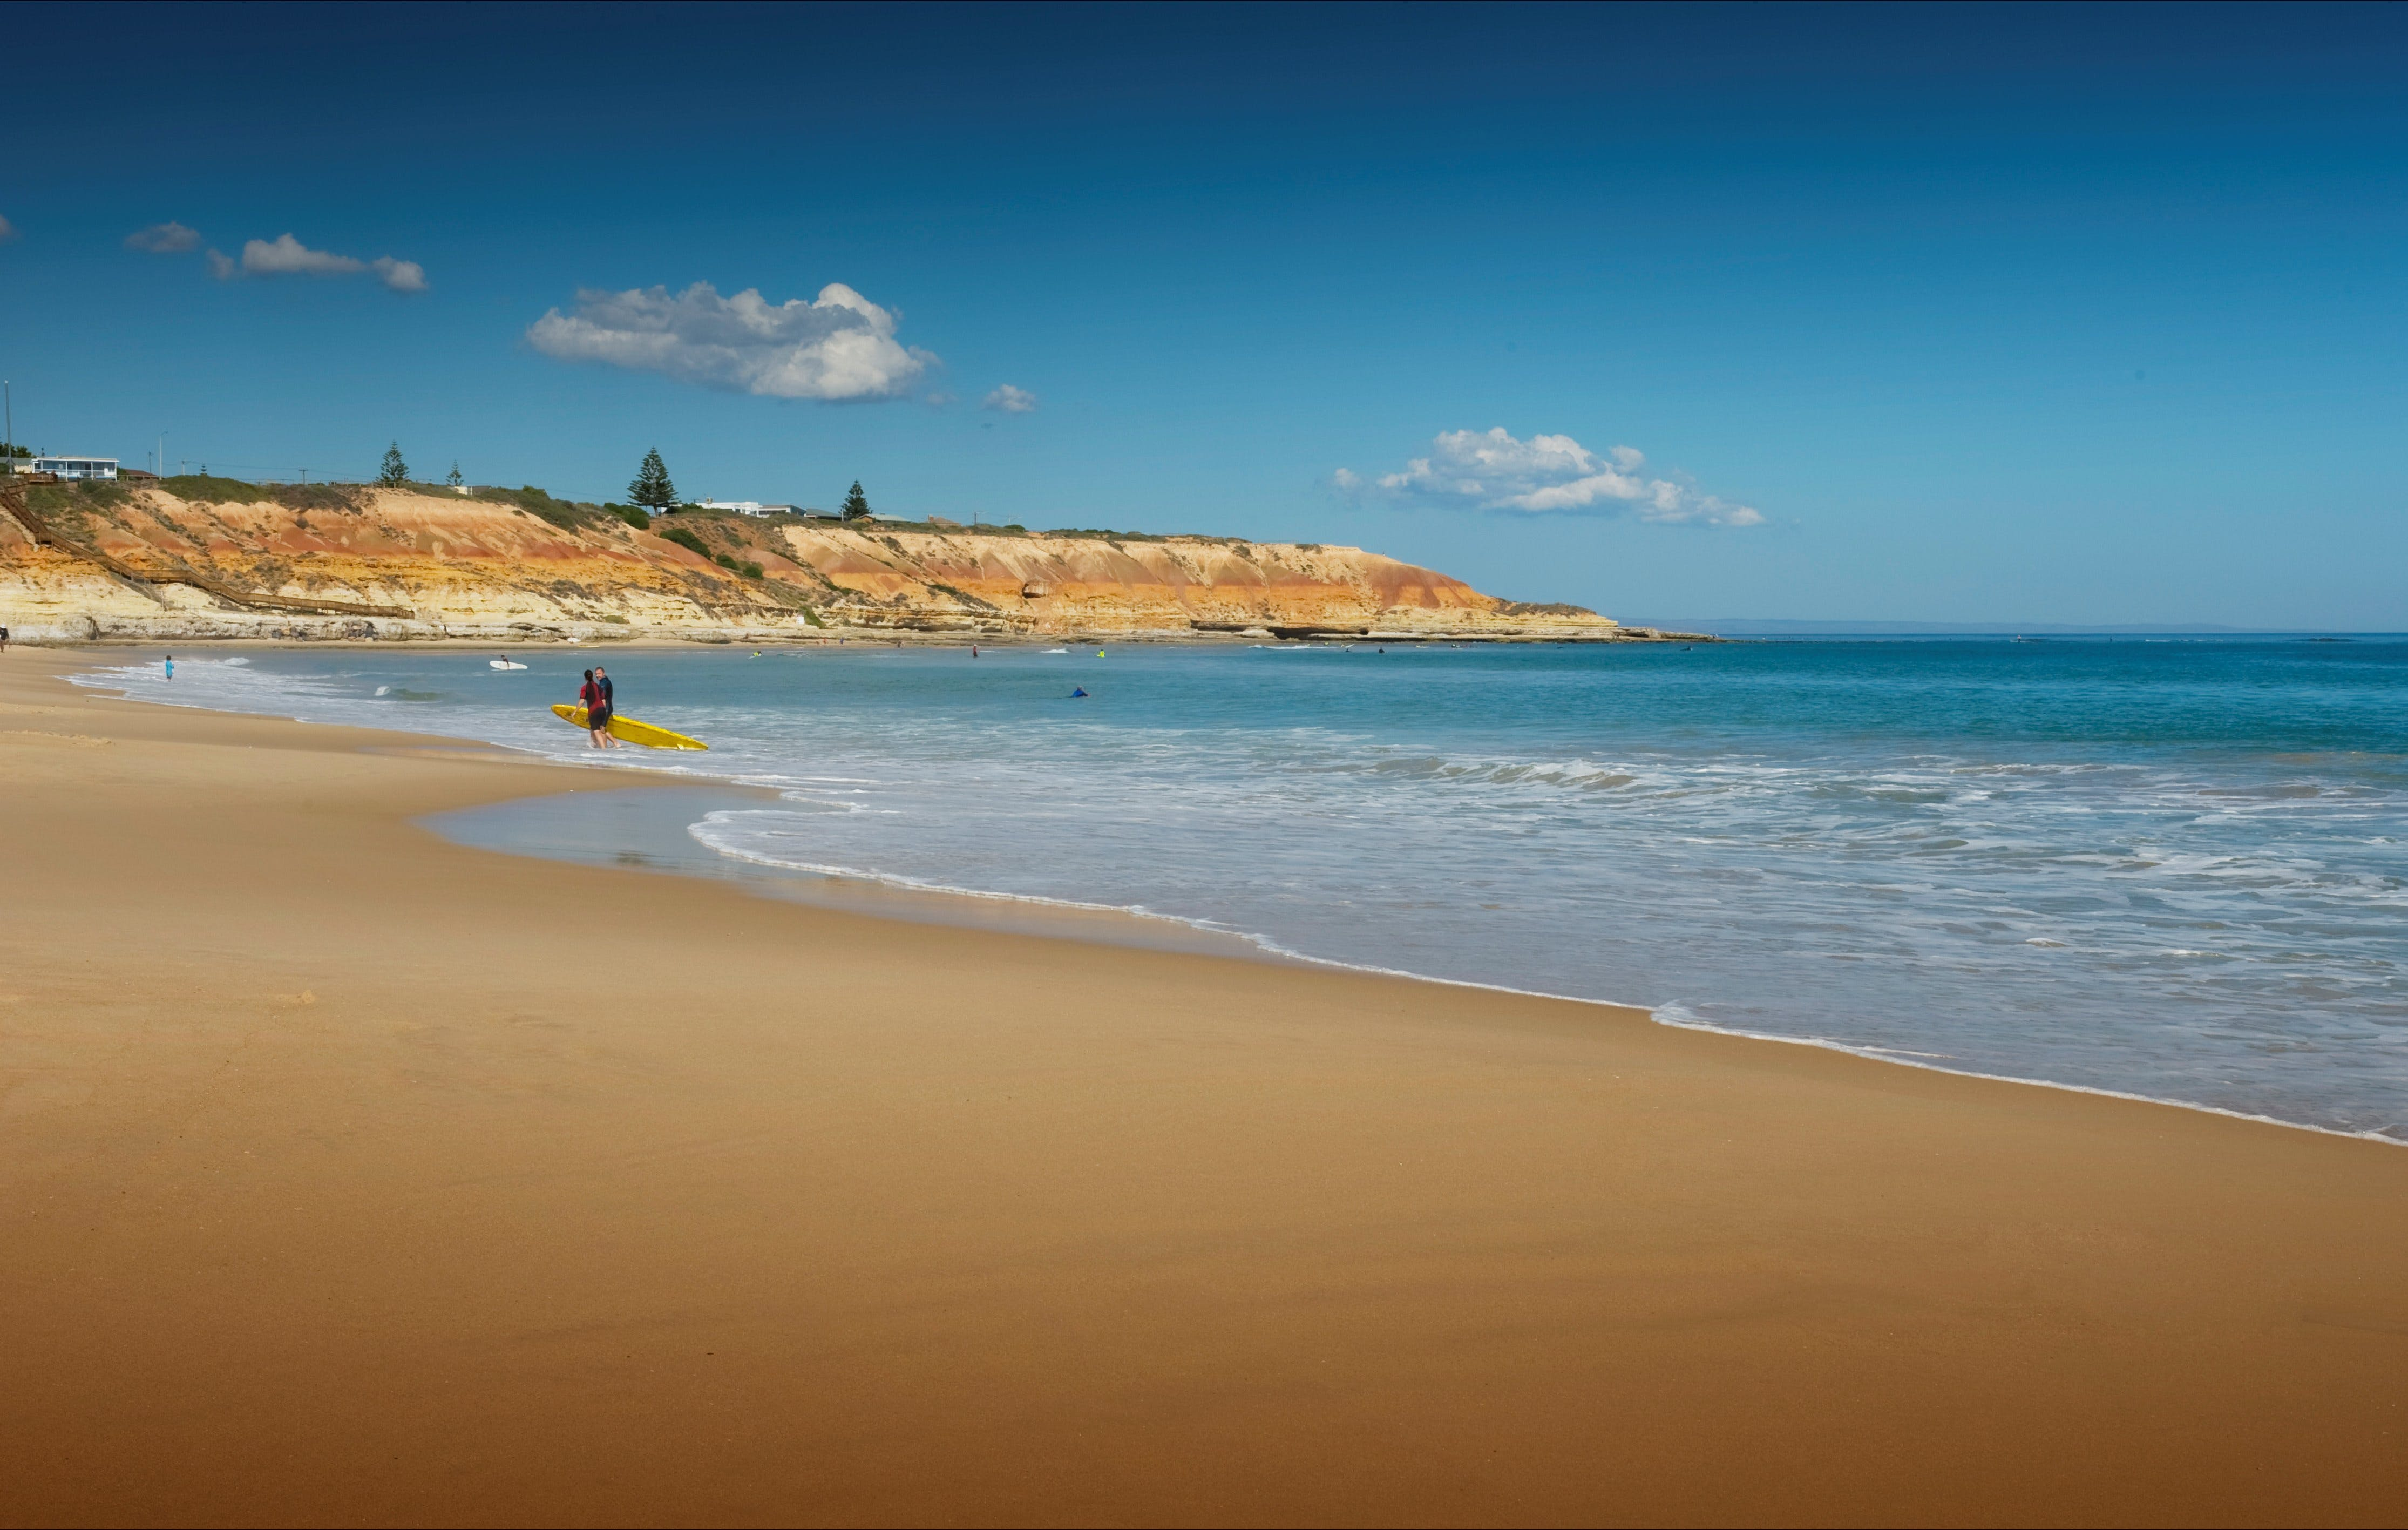 Port Noarlunga Beach Jetty Reef and Aquatic Trail - Geraldton Accommodation